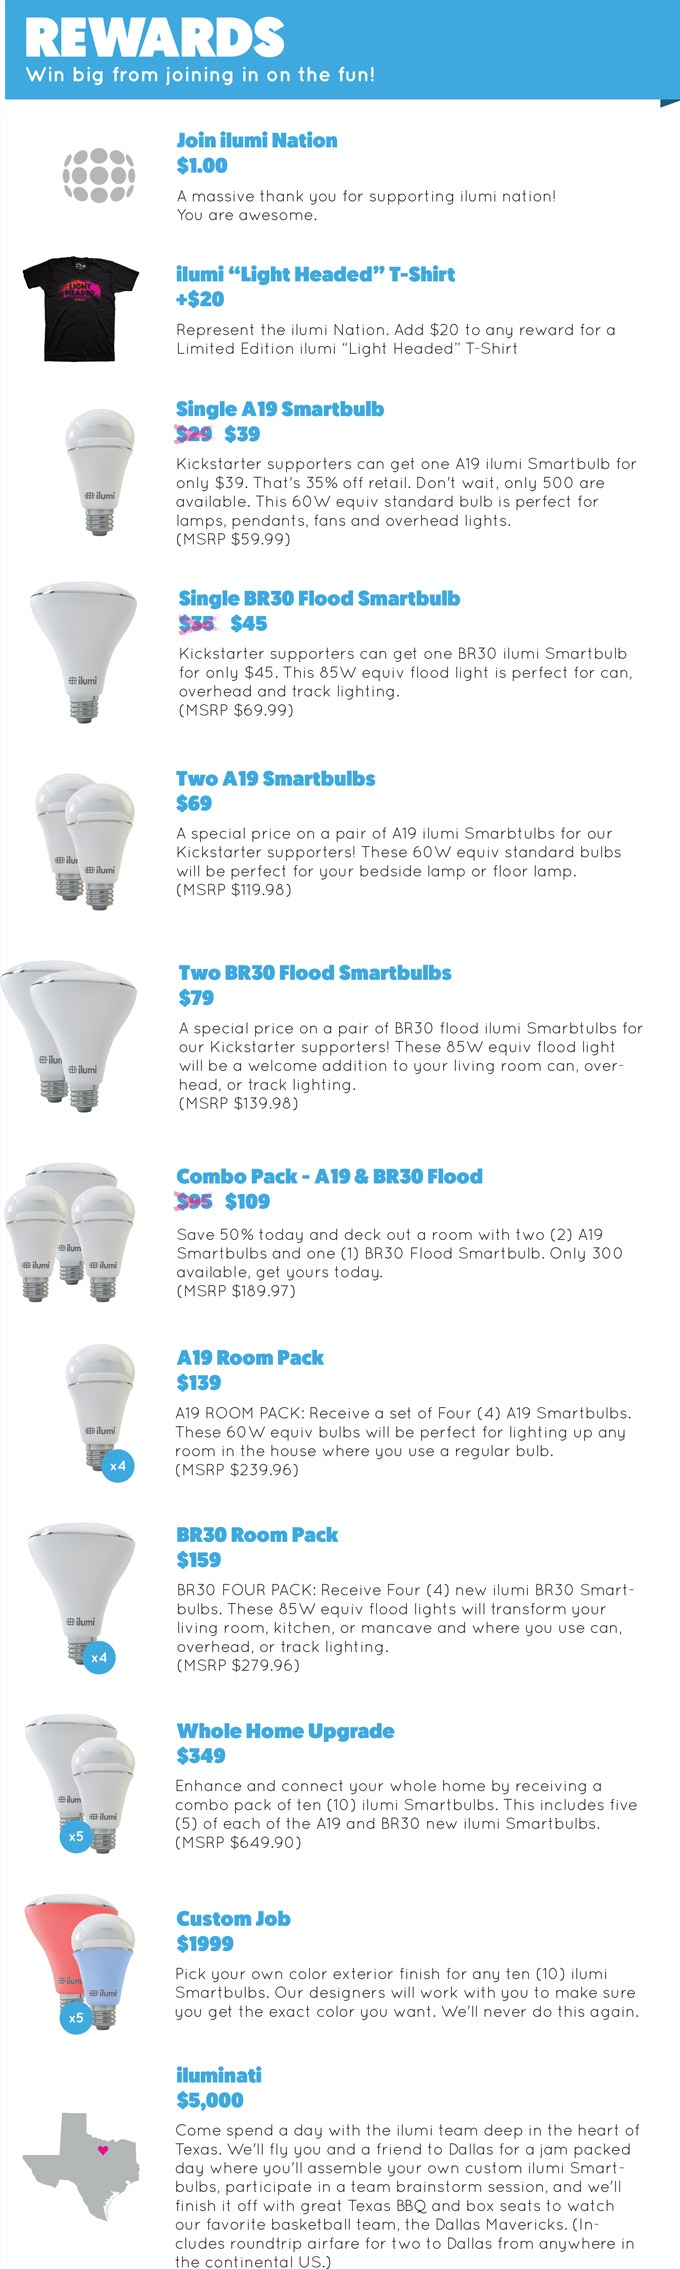 The New Ilumi A Better Smartbulb By Solutions Kickstarter Bulbs One Way Switch Parallel Circuit English Video Tutorial Want More Than Perk Or Multiples Pick Base And Add From There Youll Only Need To Shipping Cost Your Total Pledge Amount